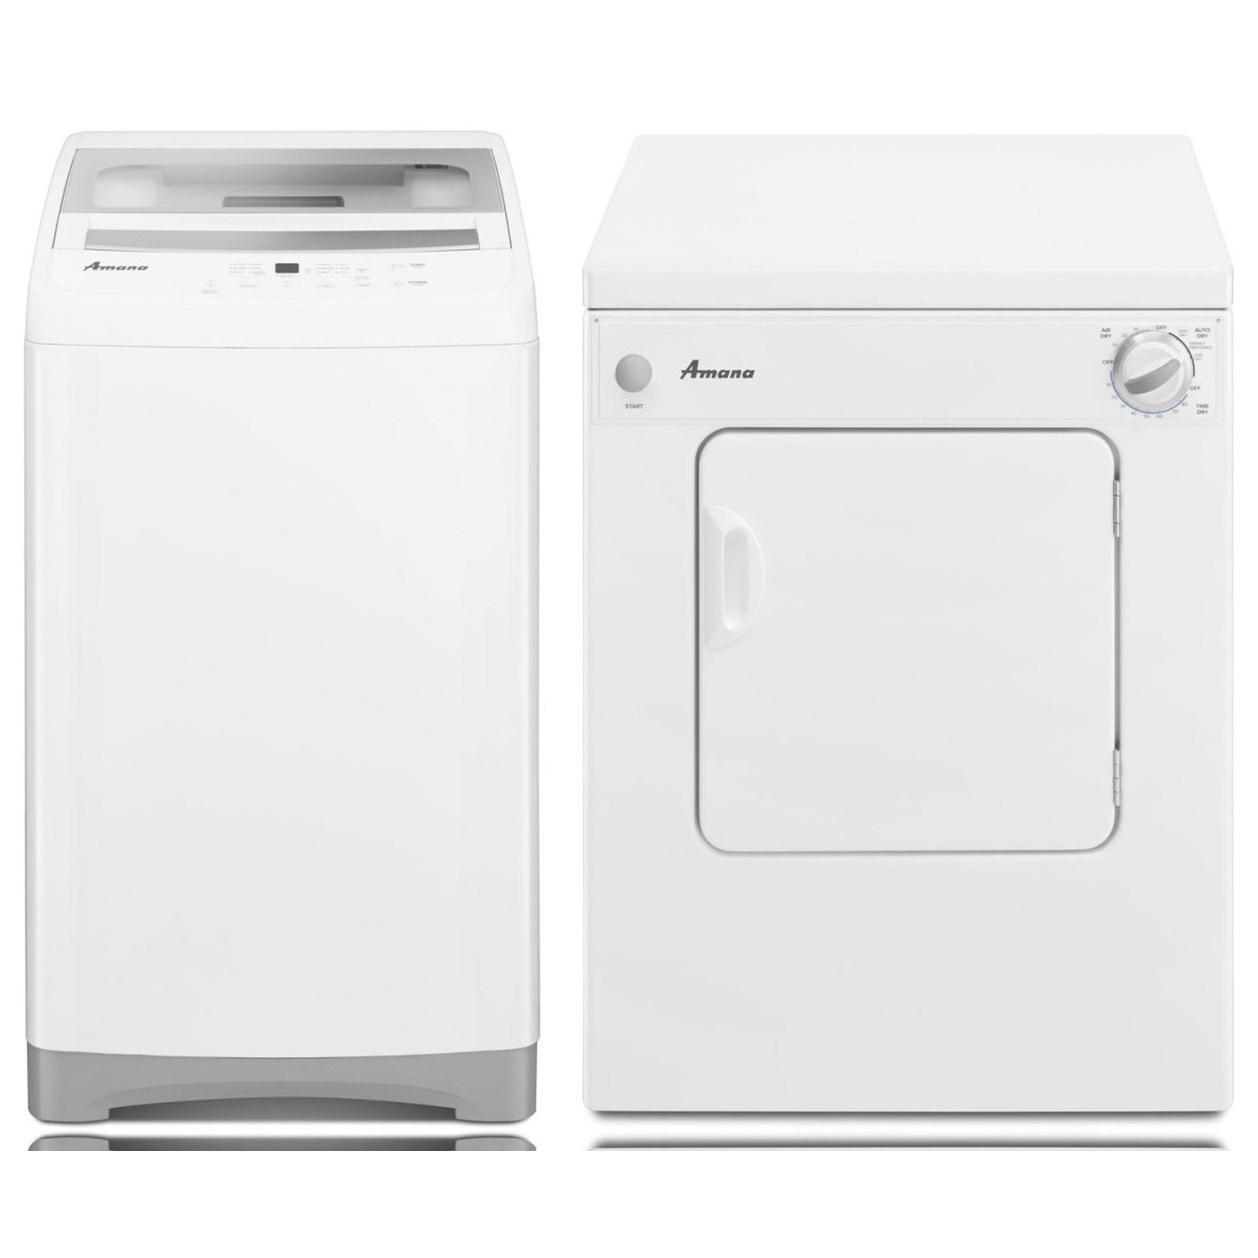 Amana portable washer and dryer set furniture and for Portable washer and dryer